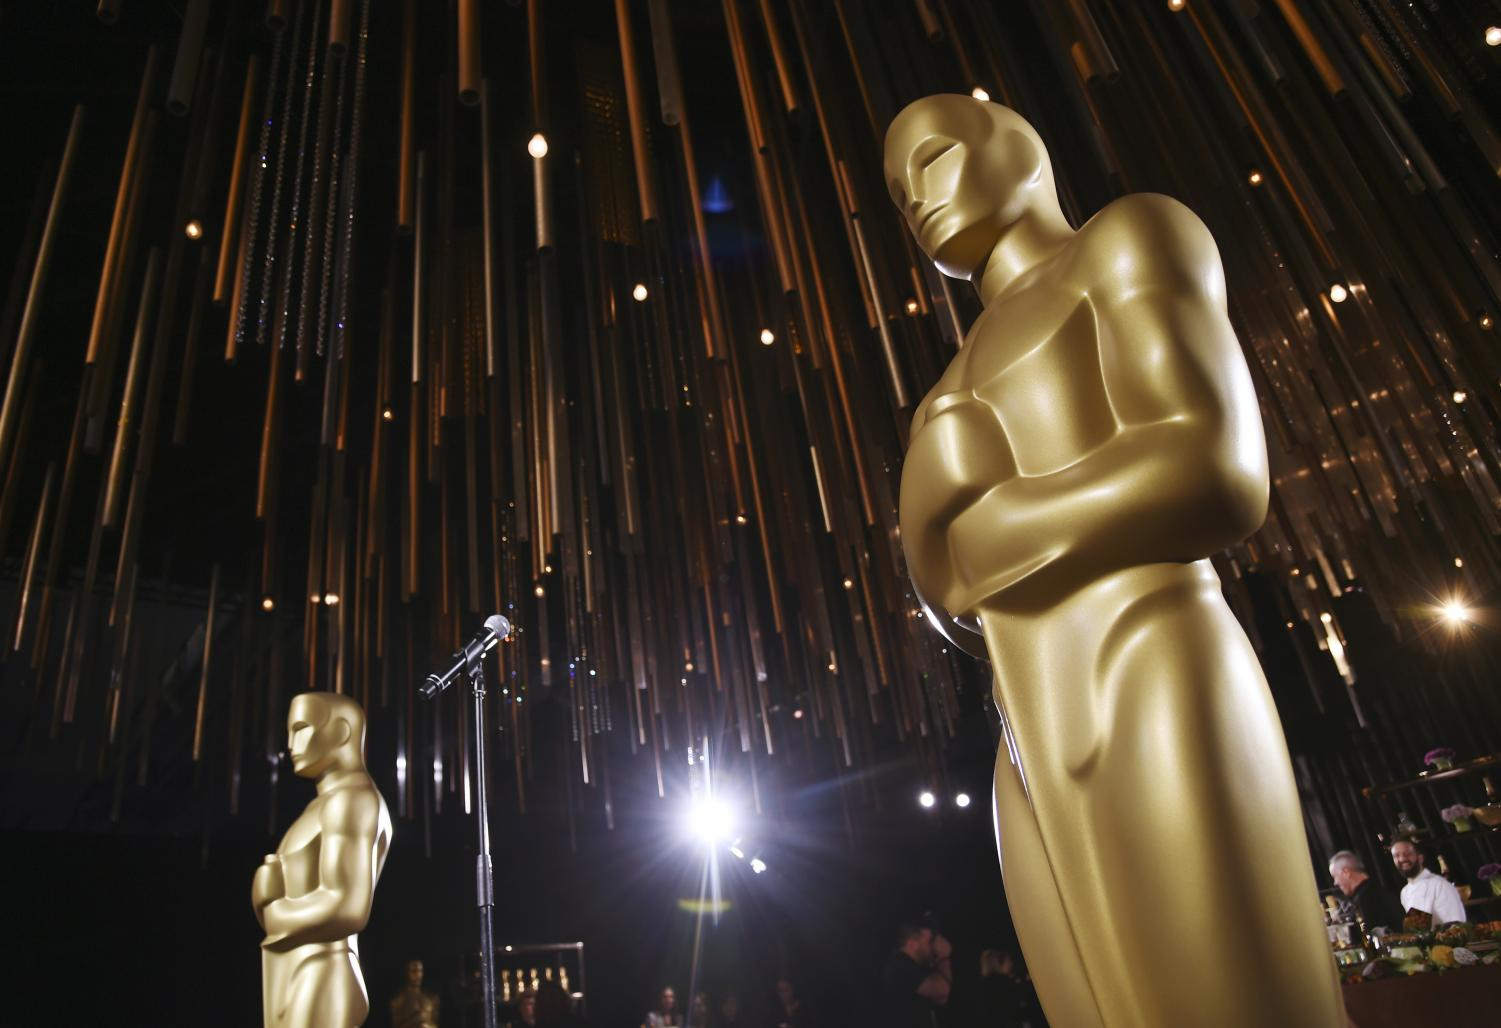 Oscar statues stand inside the Governors Ball Press Preview for the 92nd Academy Awards at the Dolby Theatre, Friday, Jan. 31, 2020, in Los Angeles. The Academy Awards will be held at the Dolby Theatre on Sunday, Feb. 9. (AP Photo/Chris Pizzello)